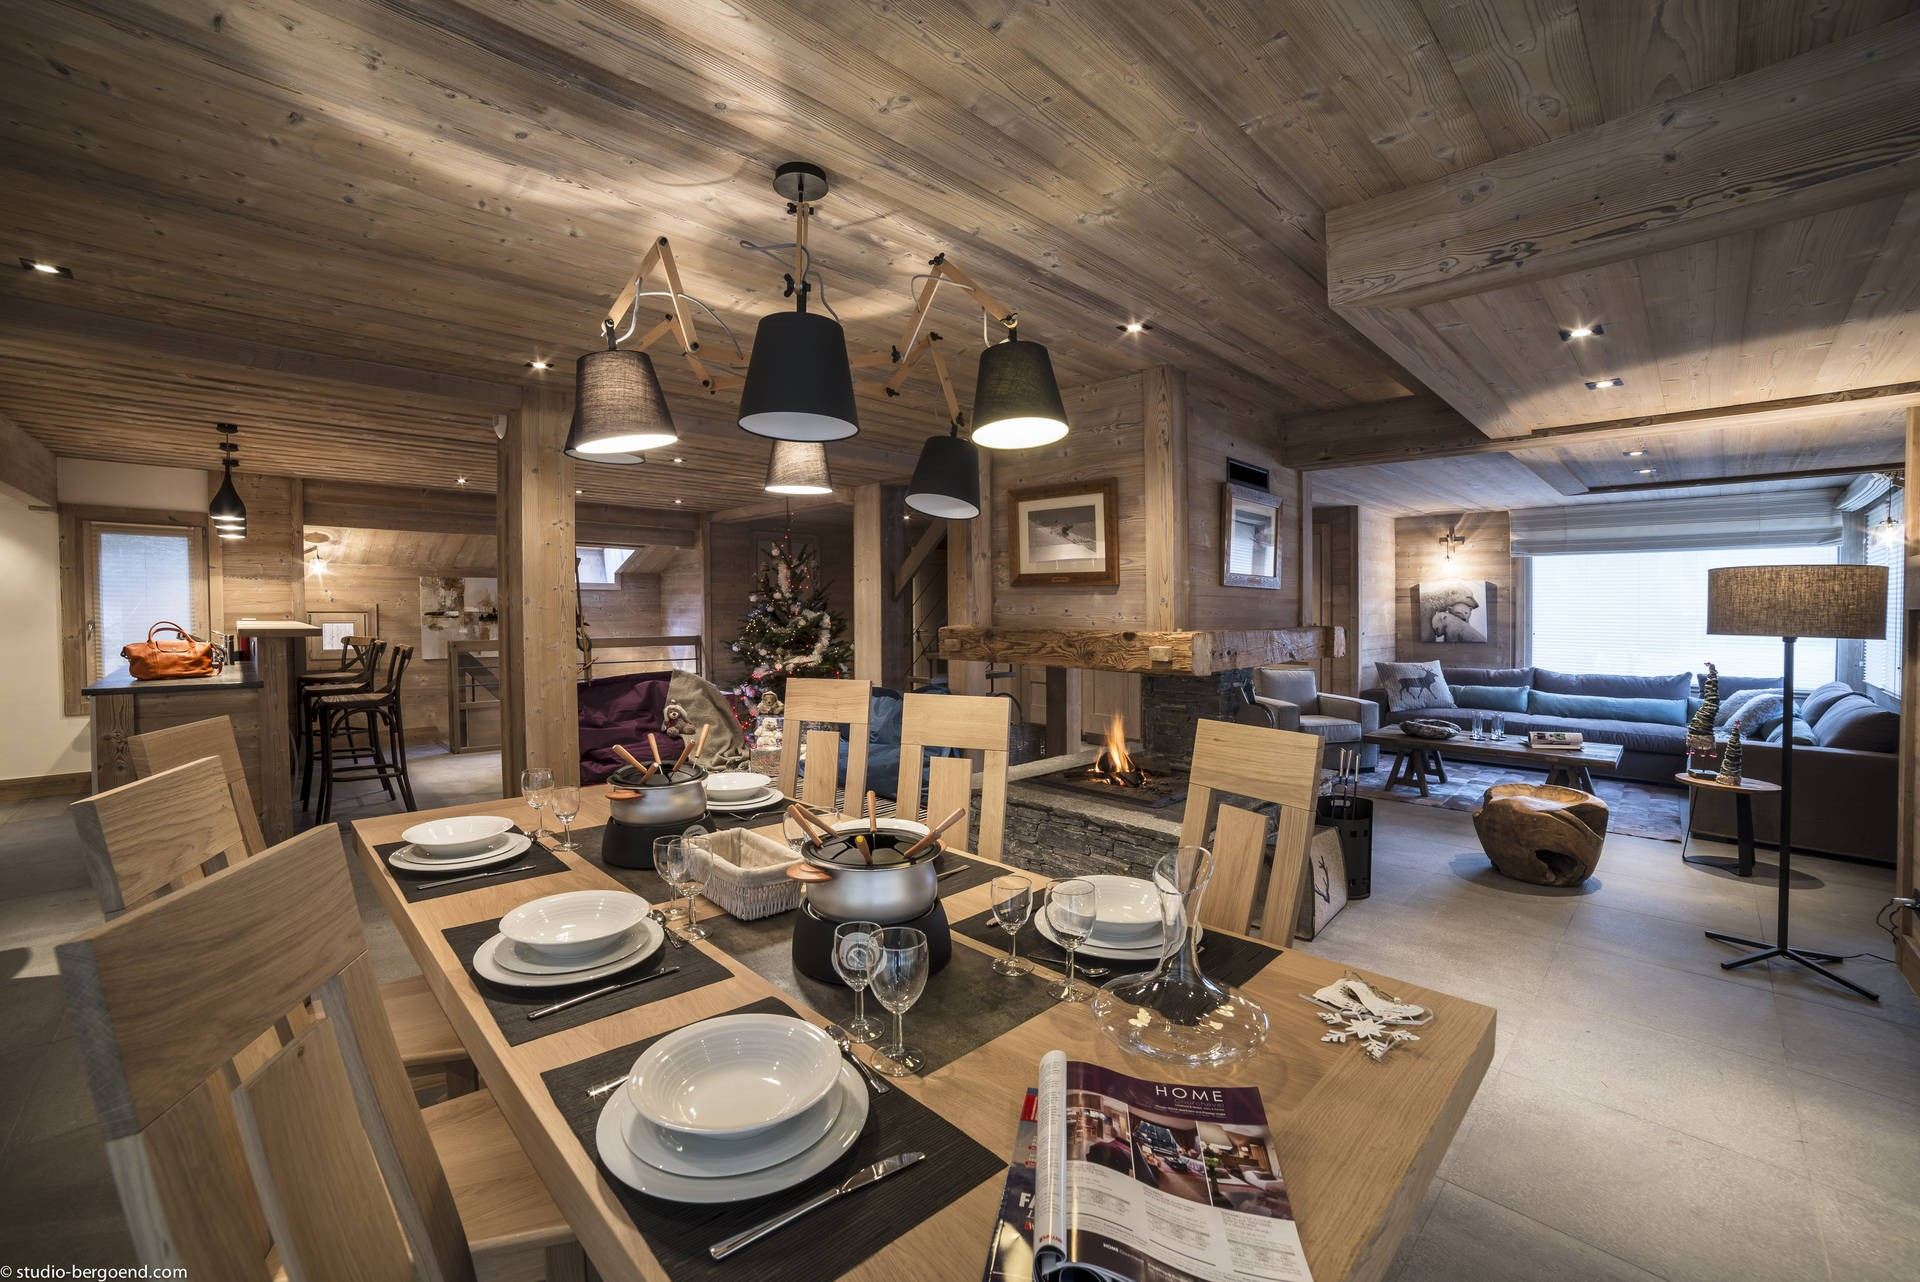 La Tania Location Chalet Luxe Counite Table A Manger